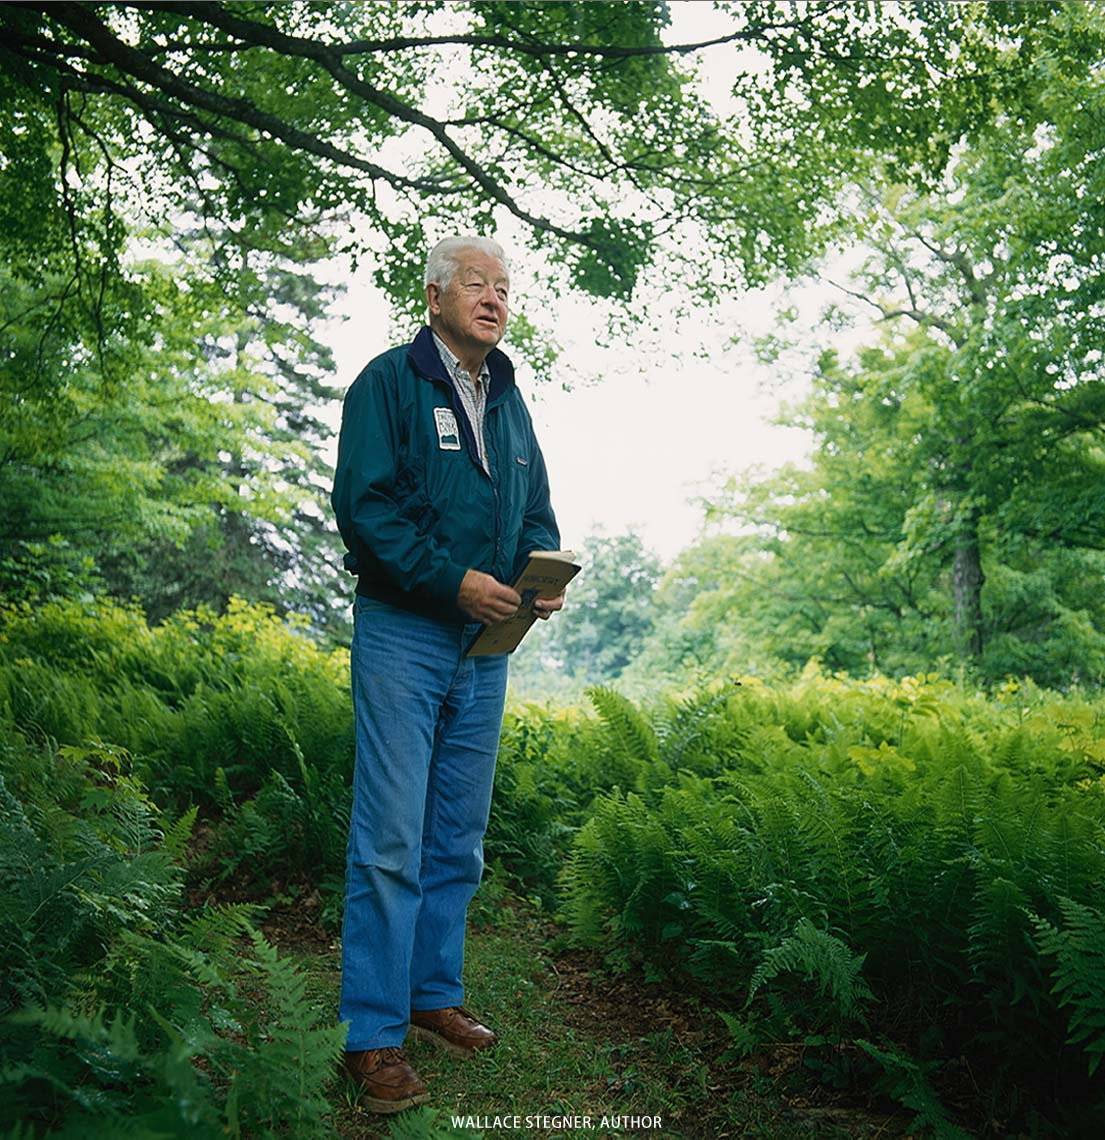 wallace-stegner-american-author-in-vermont.jpg